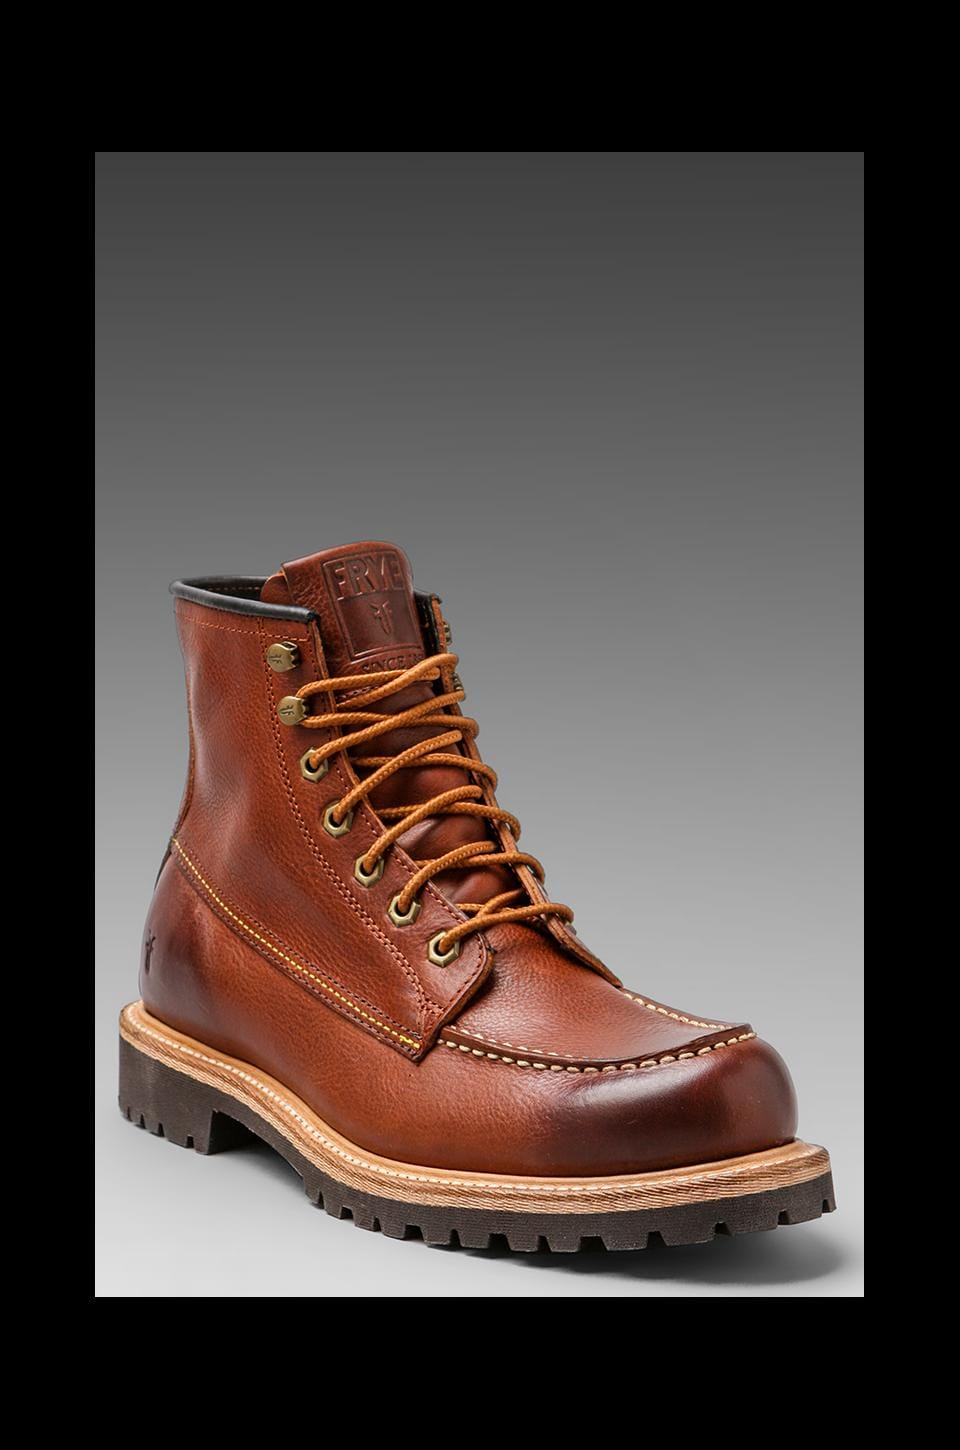 Frye Dakota Mid Lace Boot in Redwood